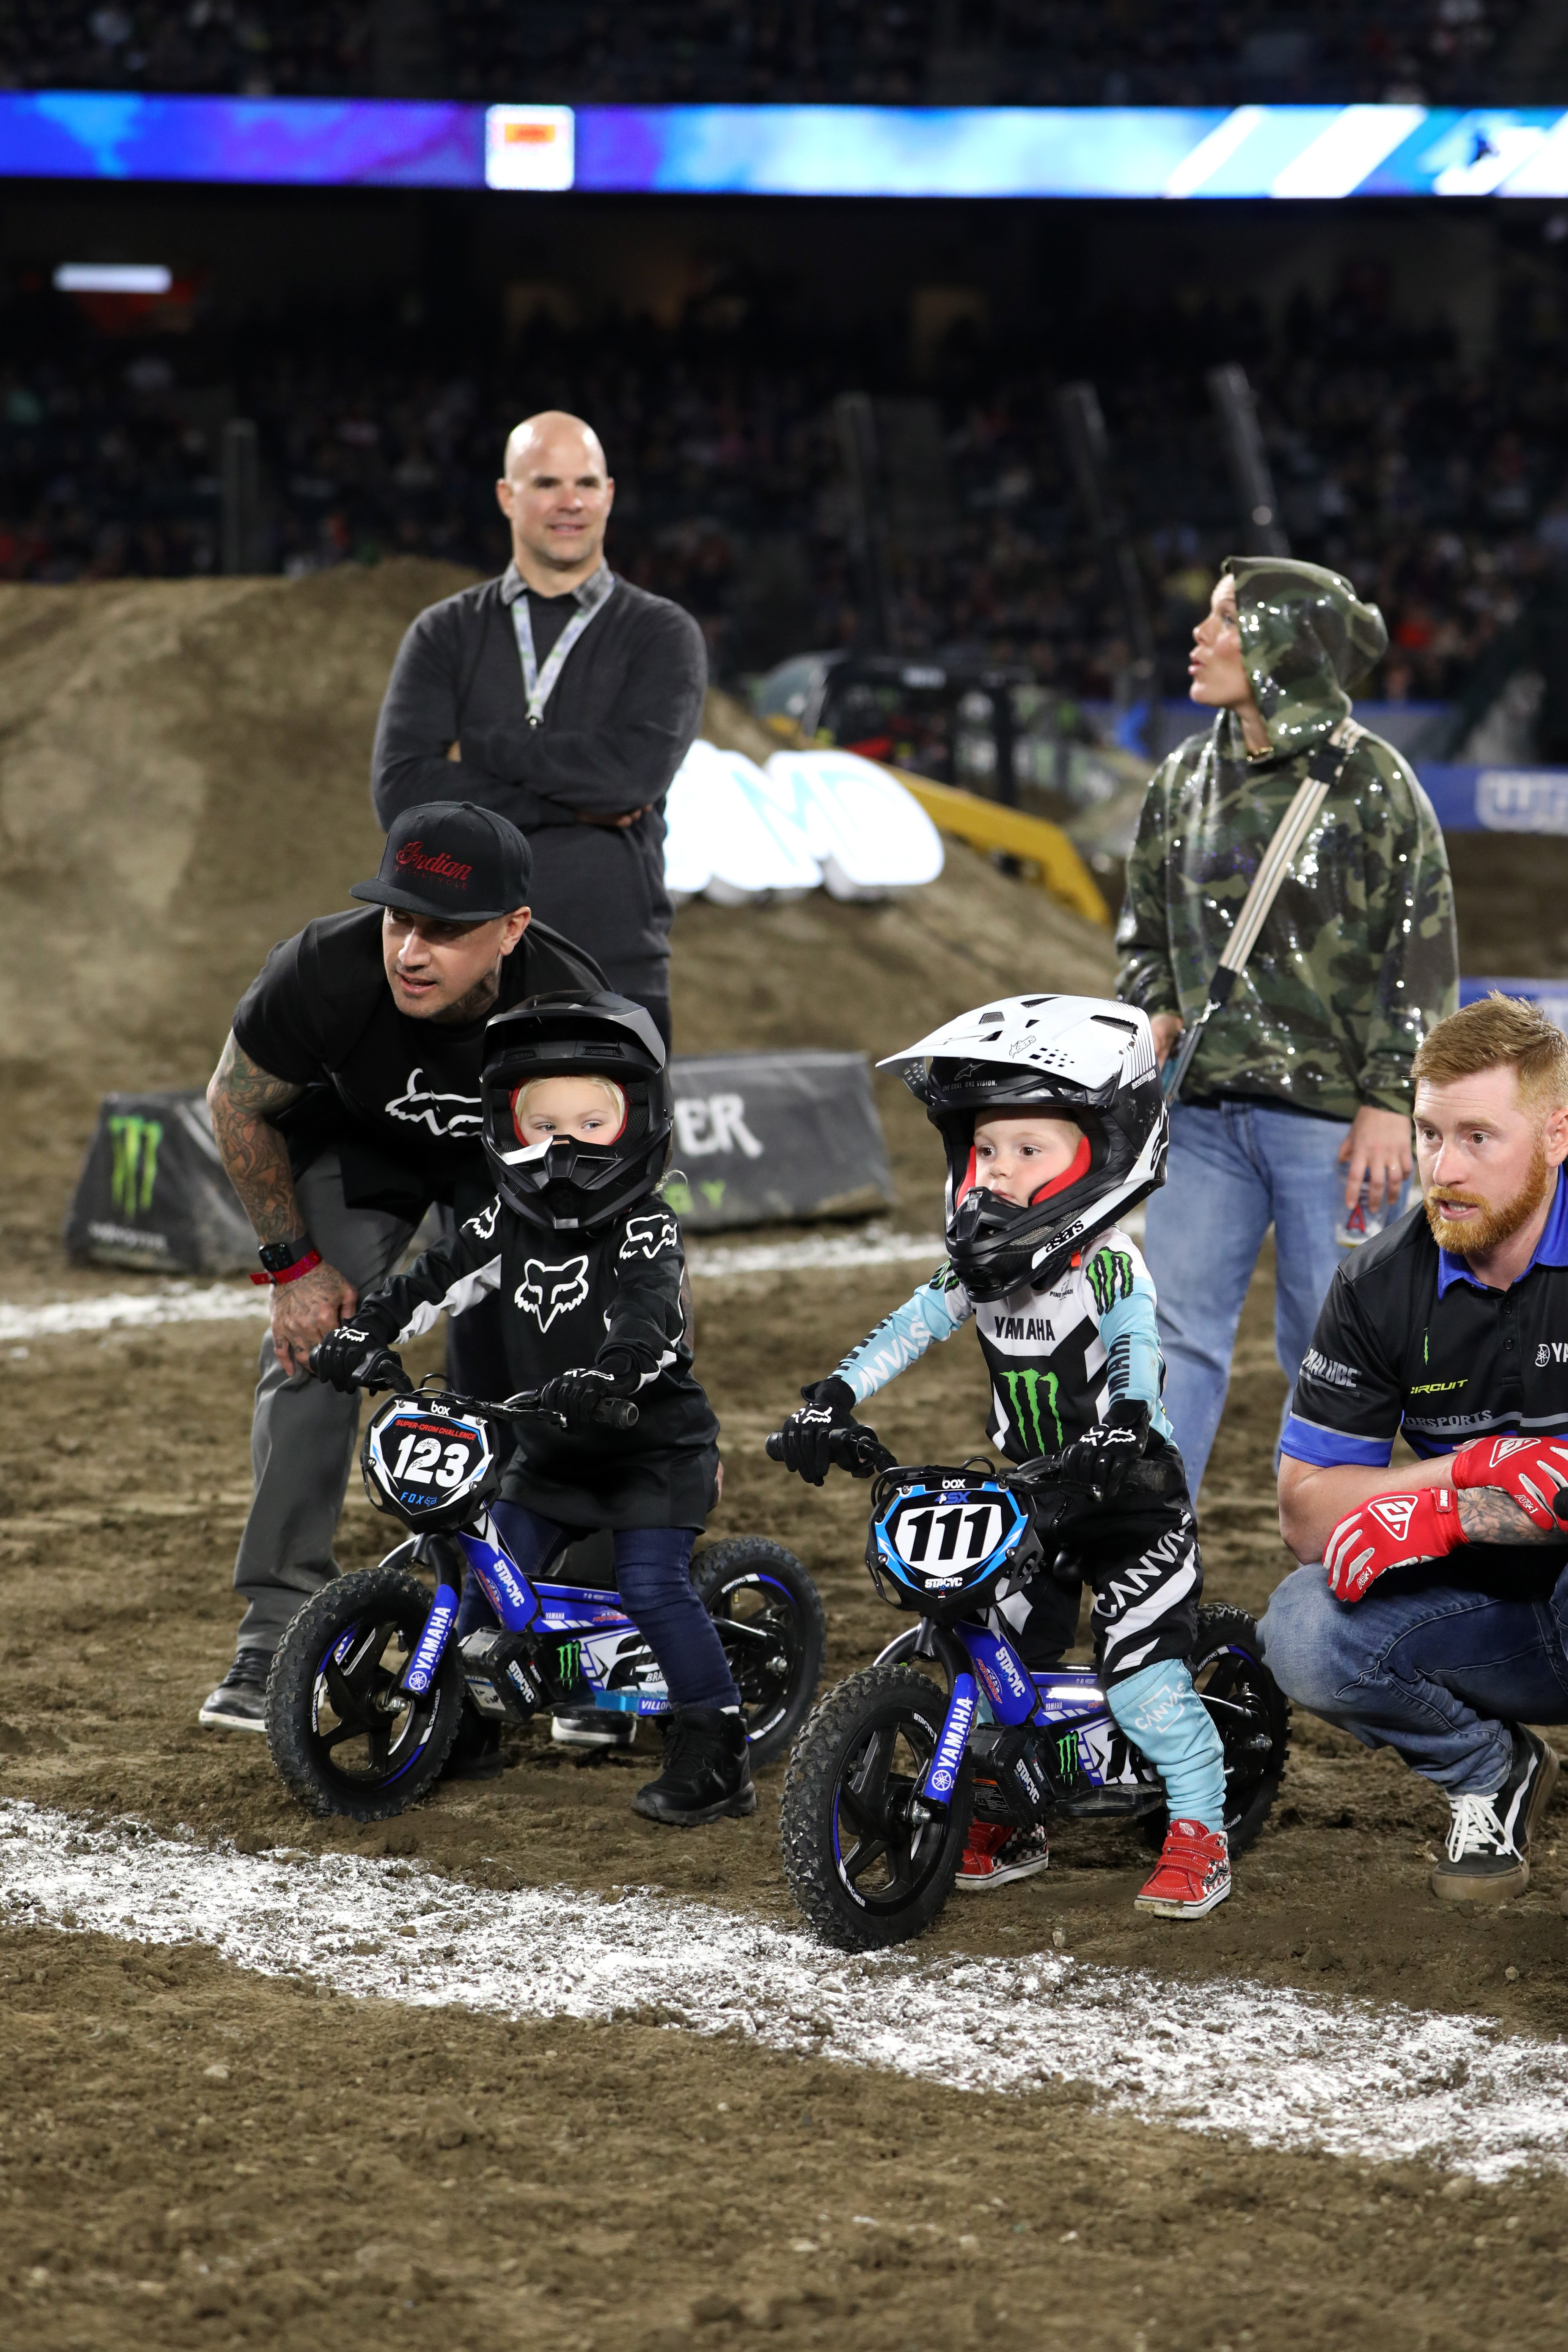 Carey Hart, Pink, and their son, Jameson, attend the Monster Energy Supercross VIP Event at Angel Stadium on January 18, 2020 in Anaheim, California. | Source: Getty Images